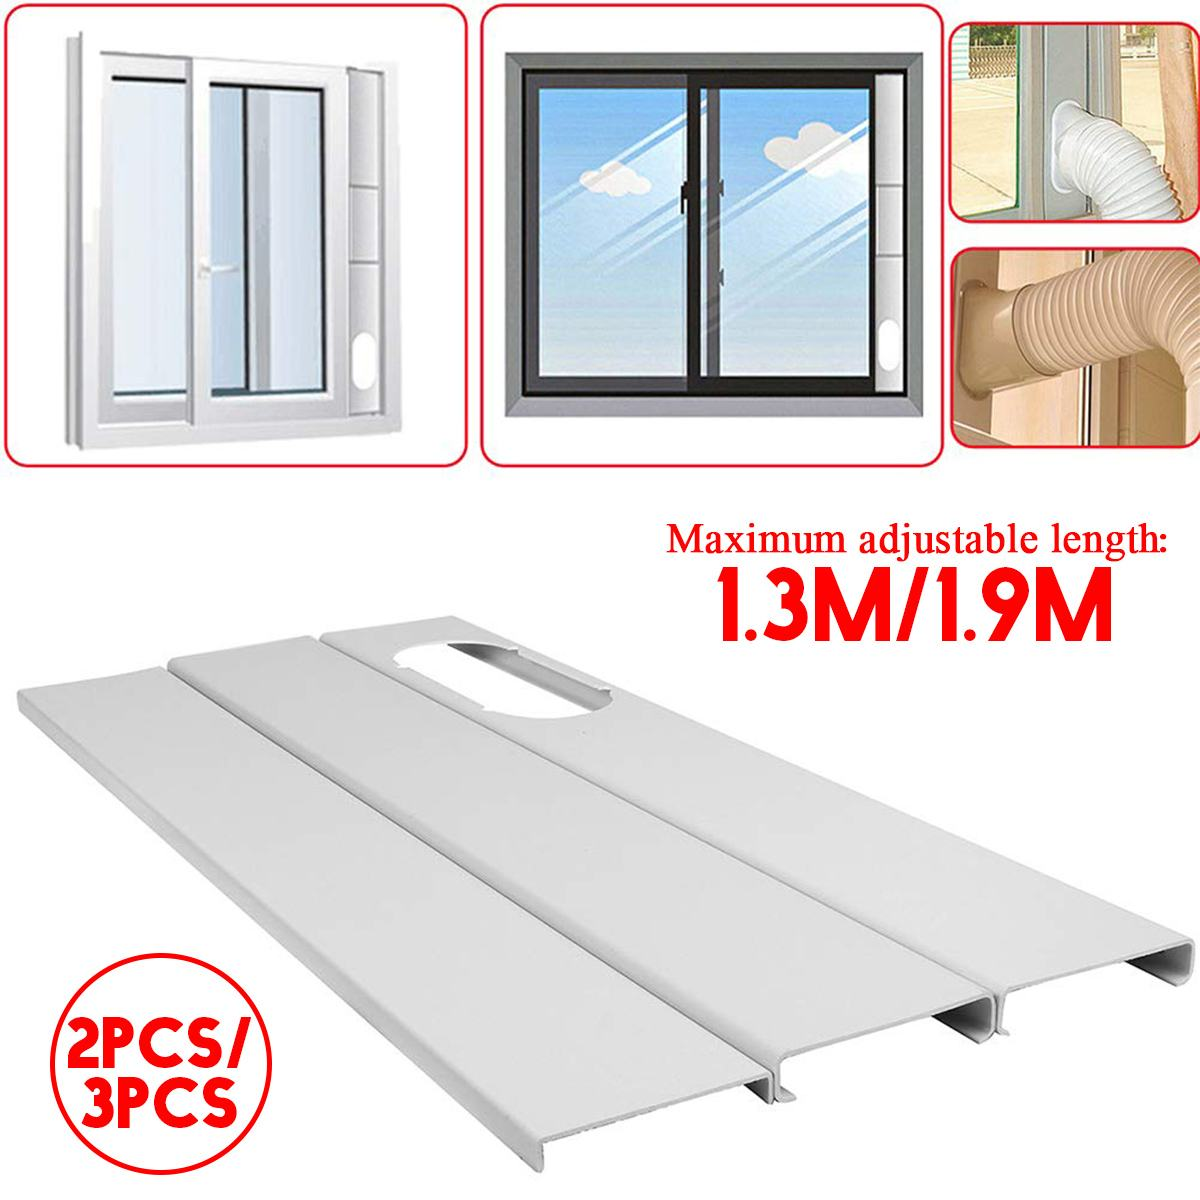 1.9M/1.3M Mobile Air Conditioner Universal Adjustable Window Sealing Plate Splint Baffle Airconditioner Scudo Condizionatore